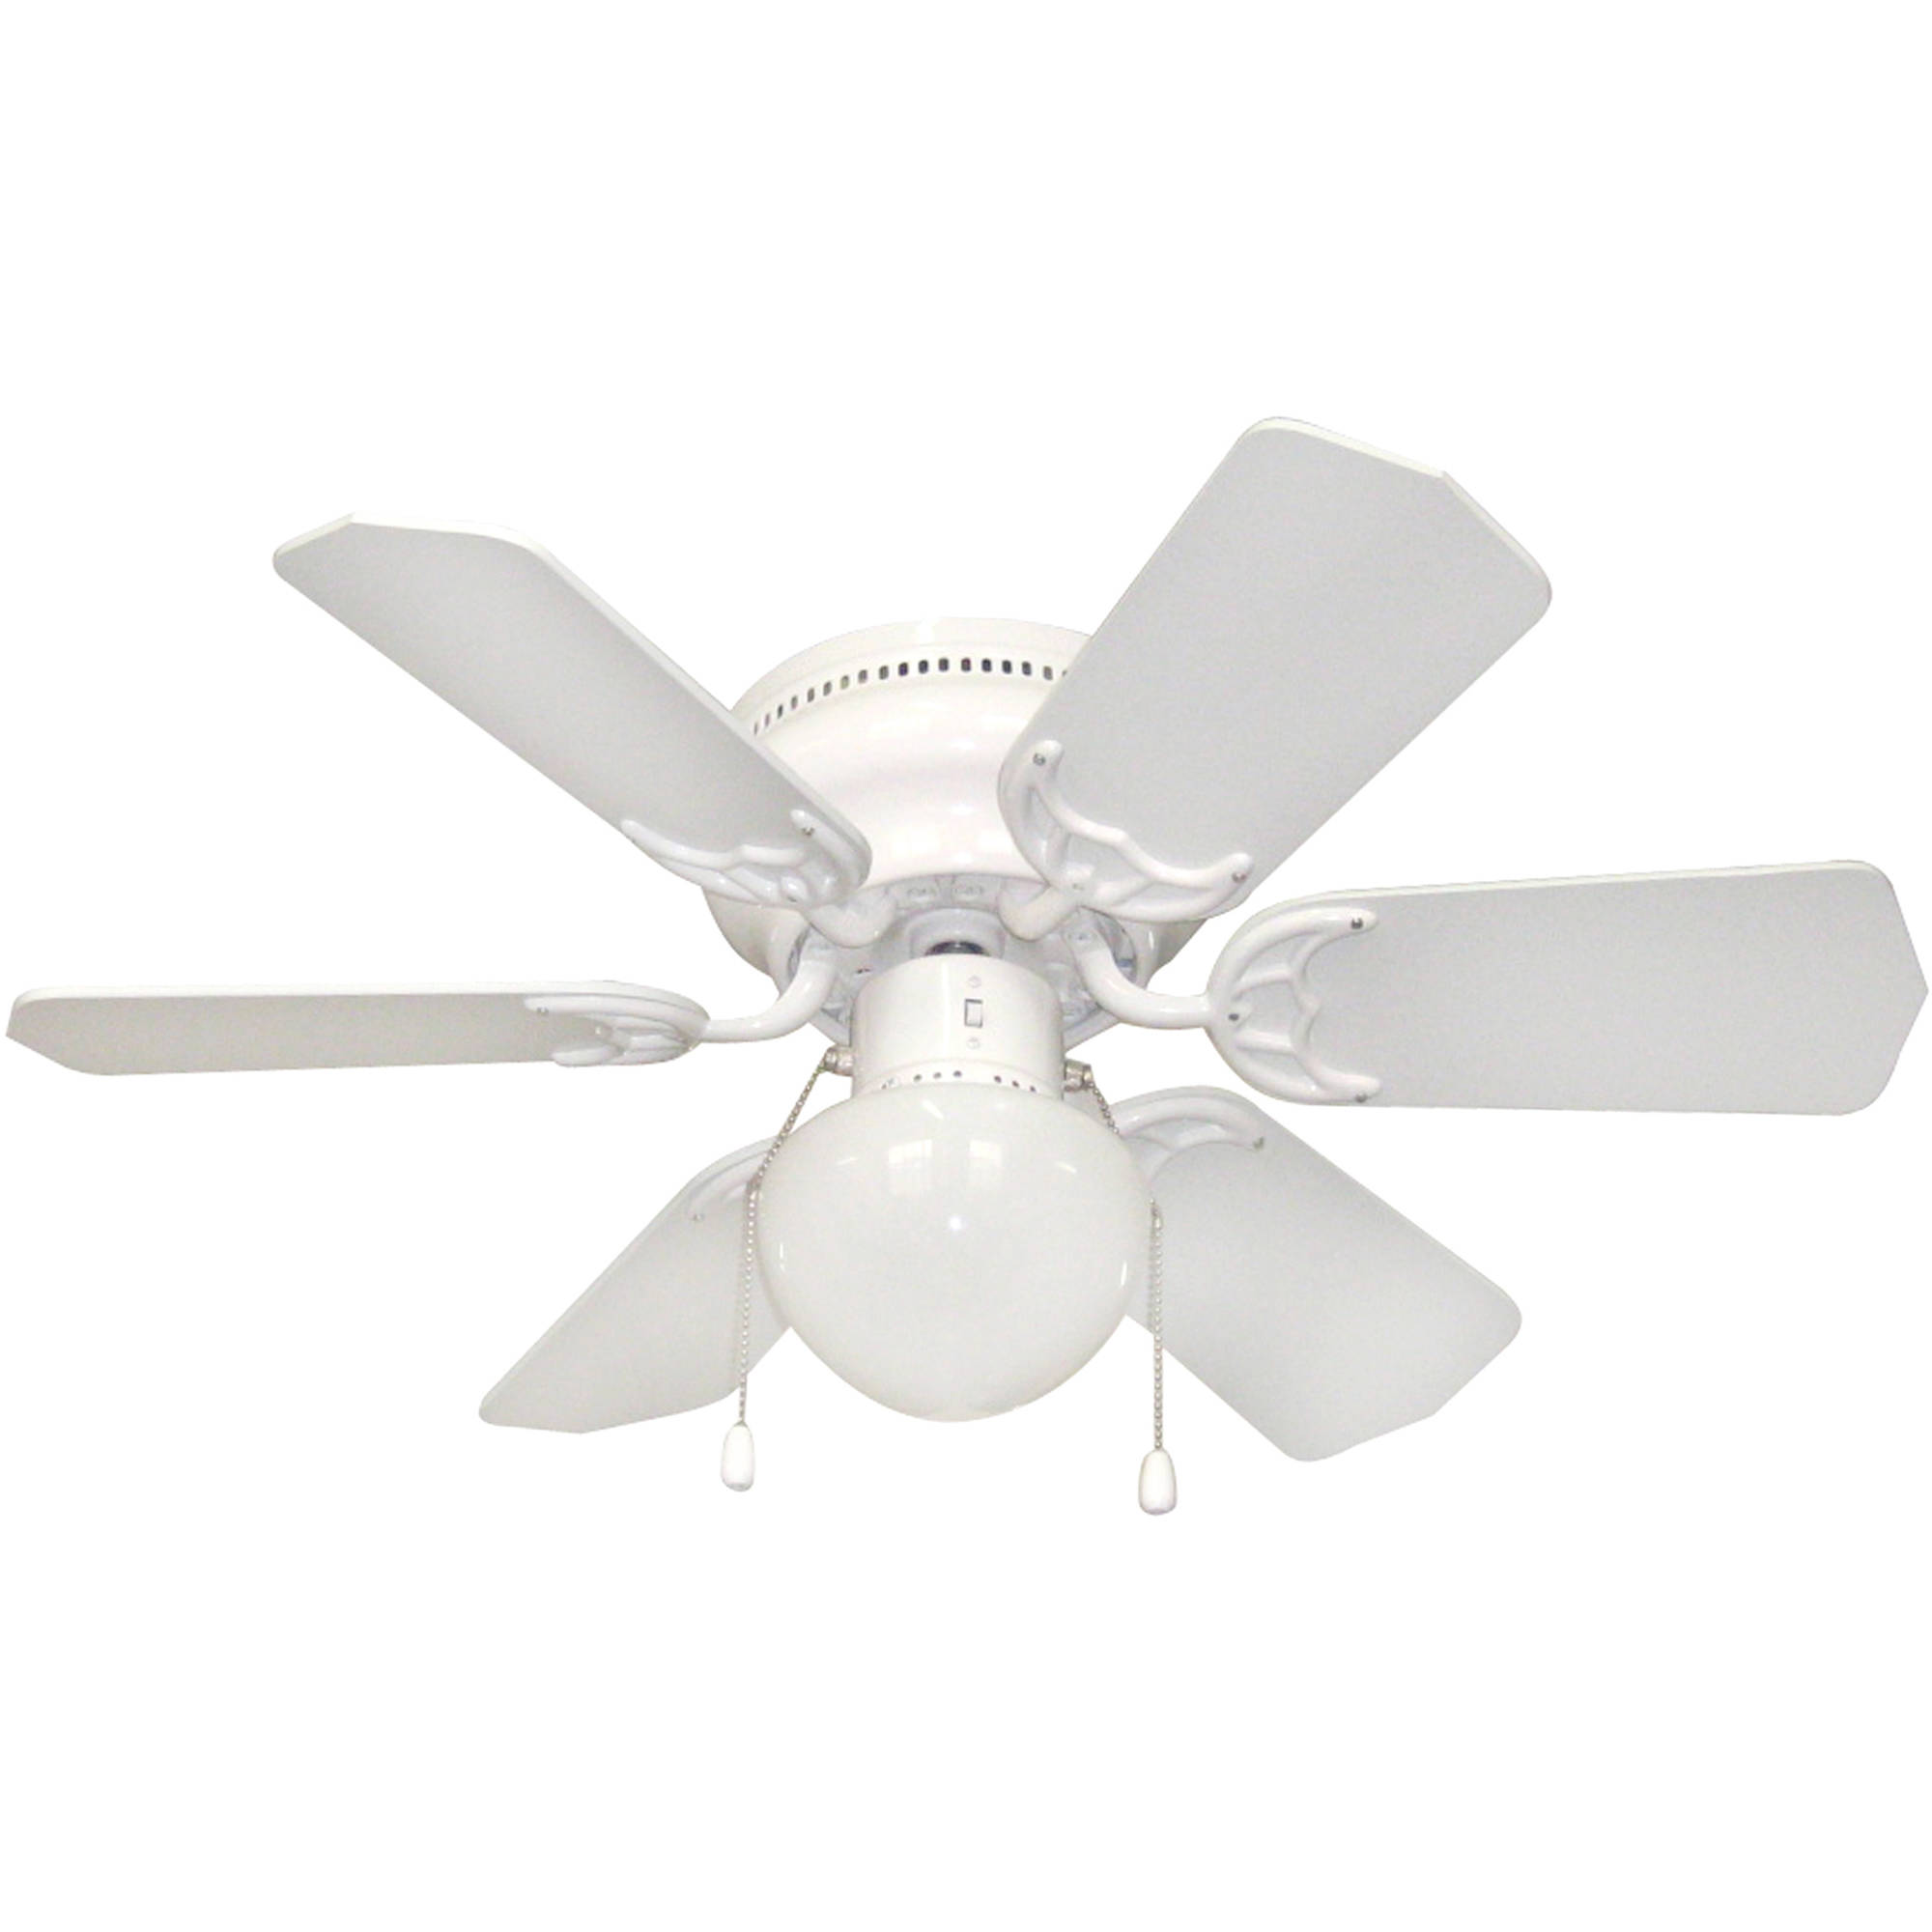 "Litex Industries Vortex Hugger 30"" Hugger Ceiling Fan White"